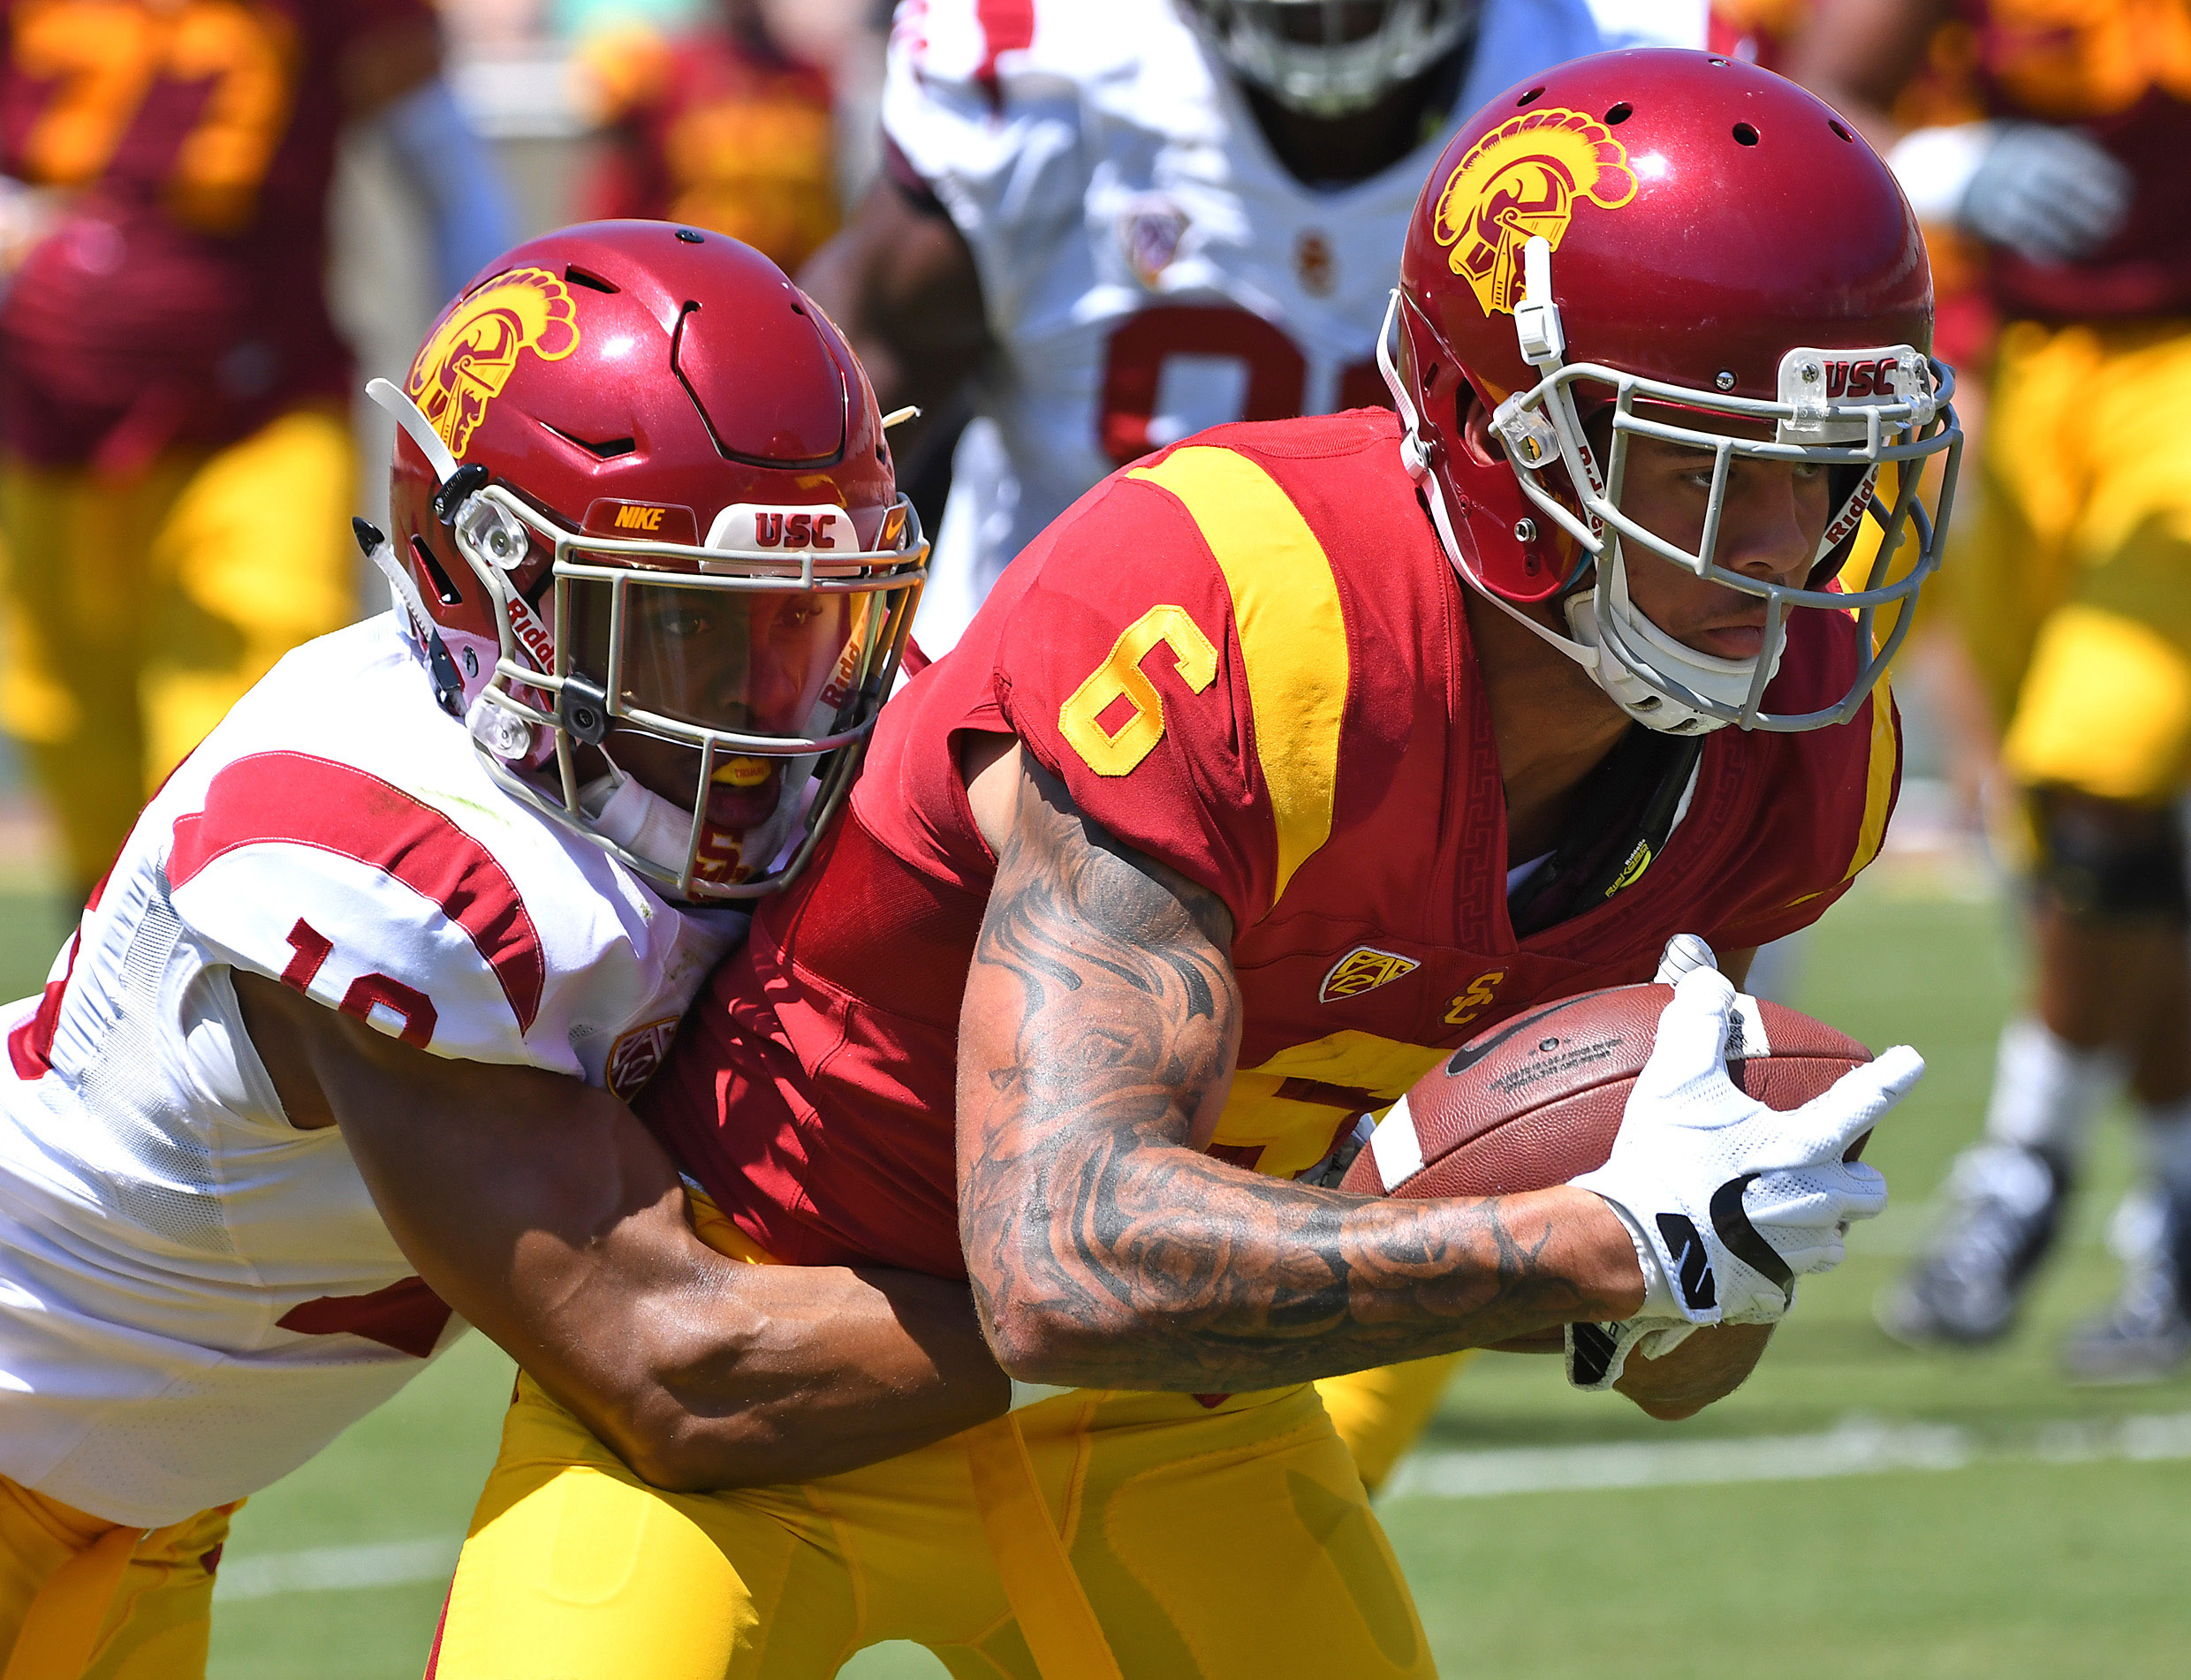 10013931-ncaa-football-southern-california-spring-game